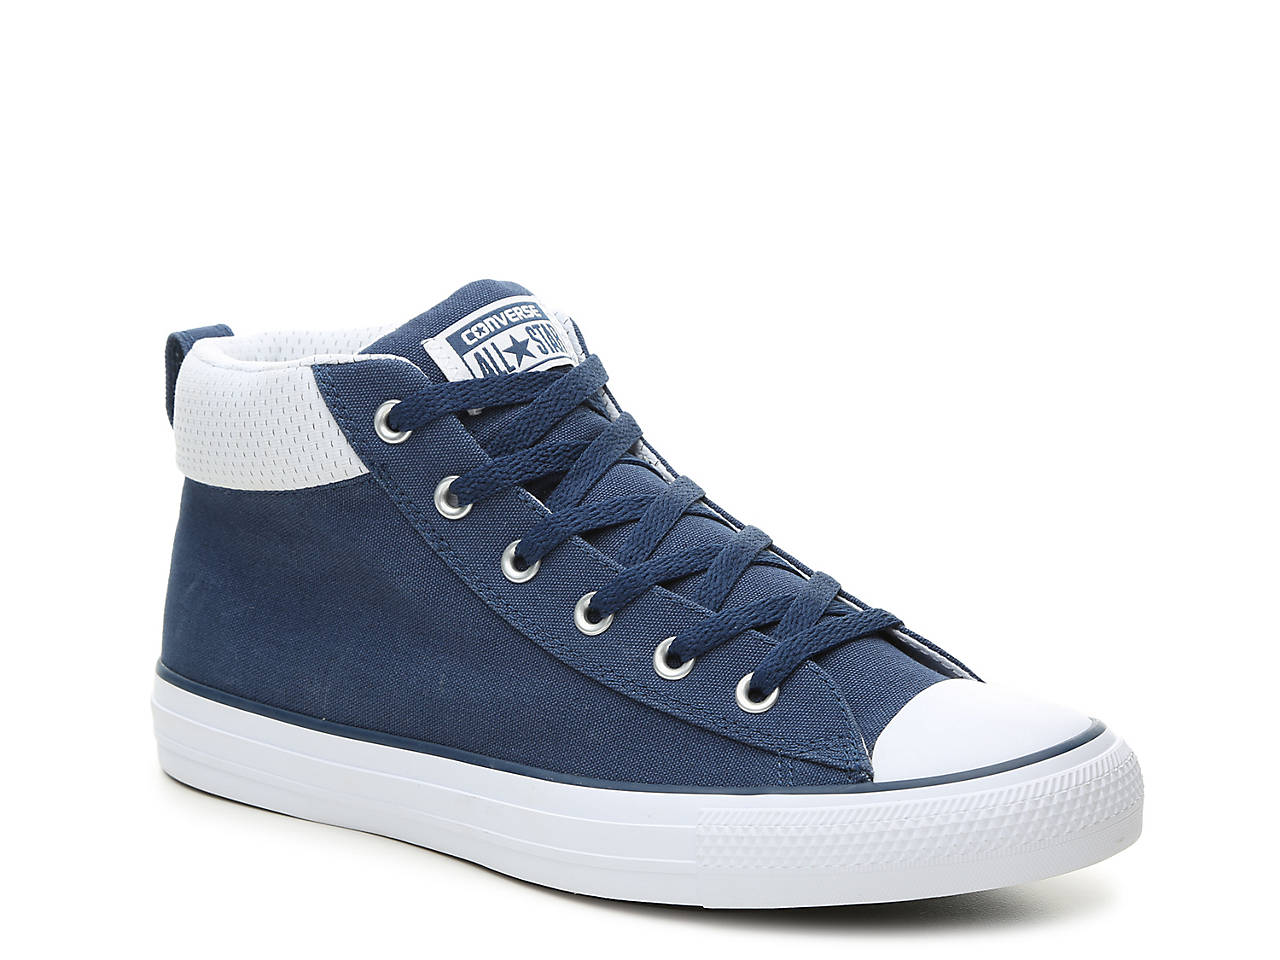 Chuck Taylor All Star Street Mid Top Sneaker Men's